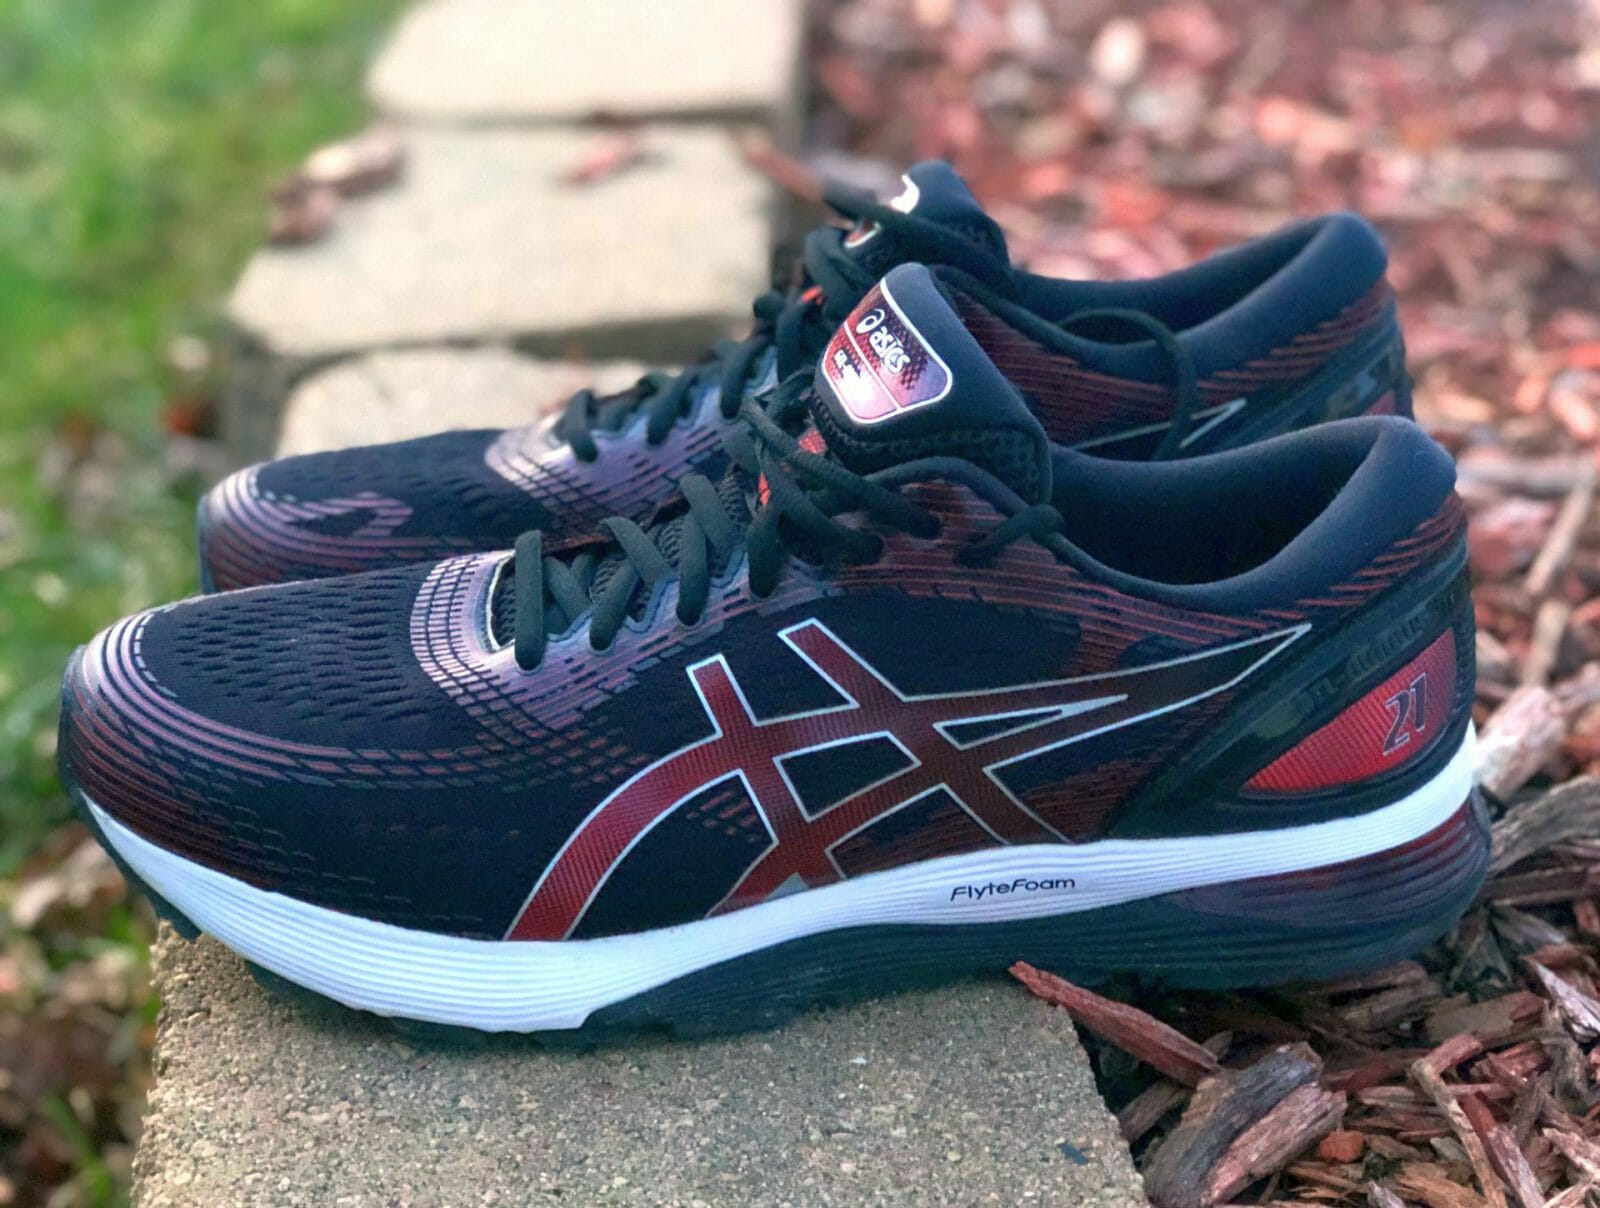 9d3e68137c4 Asics Gel Nimbus 21 Review | Running Shoes Guru